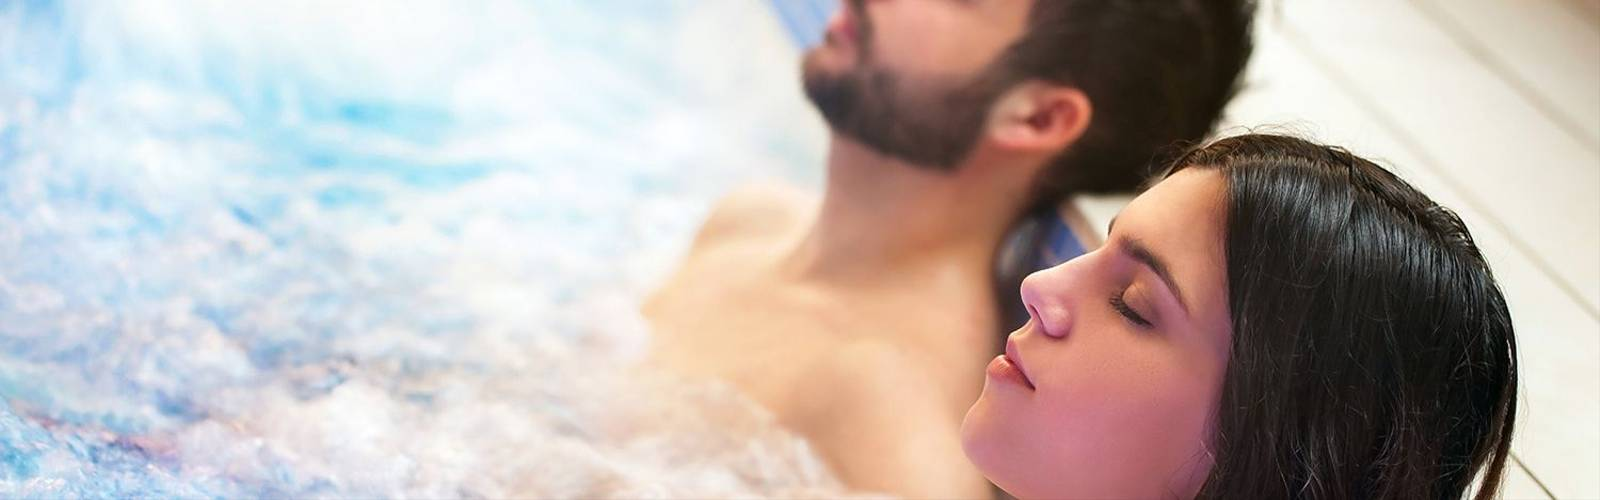 Close up portrait of young couple relaxing in spa jacuzzi. Couple together in bubble water with eyes closed.